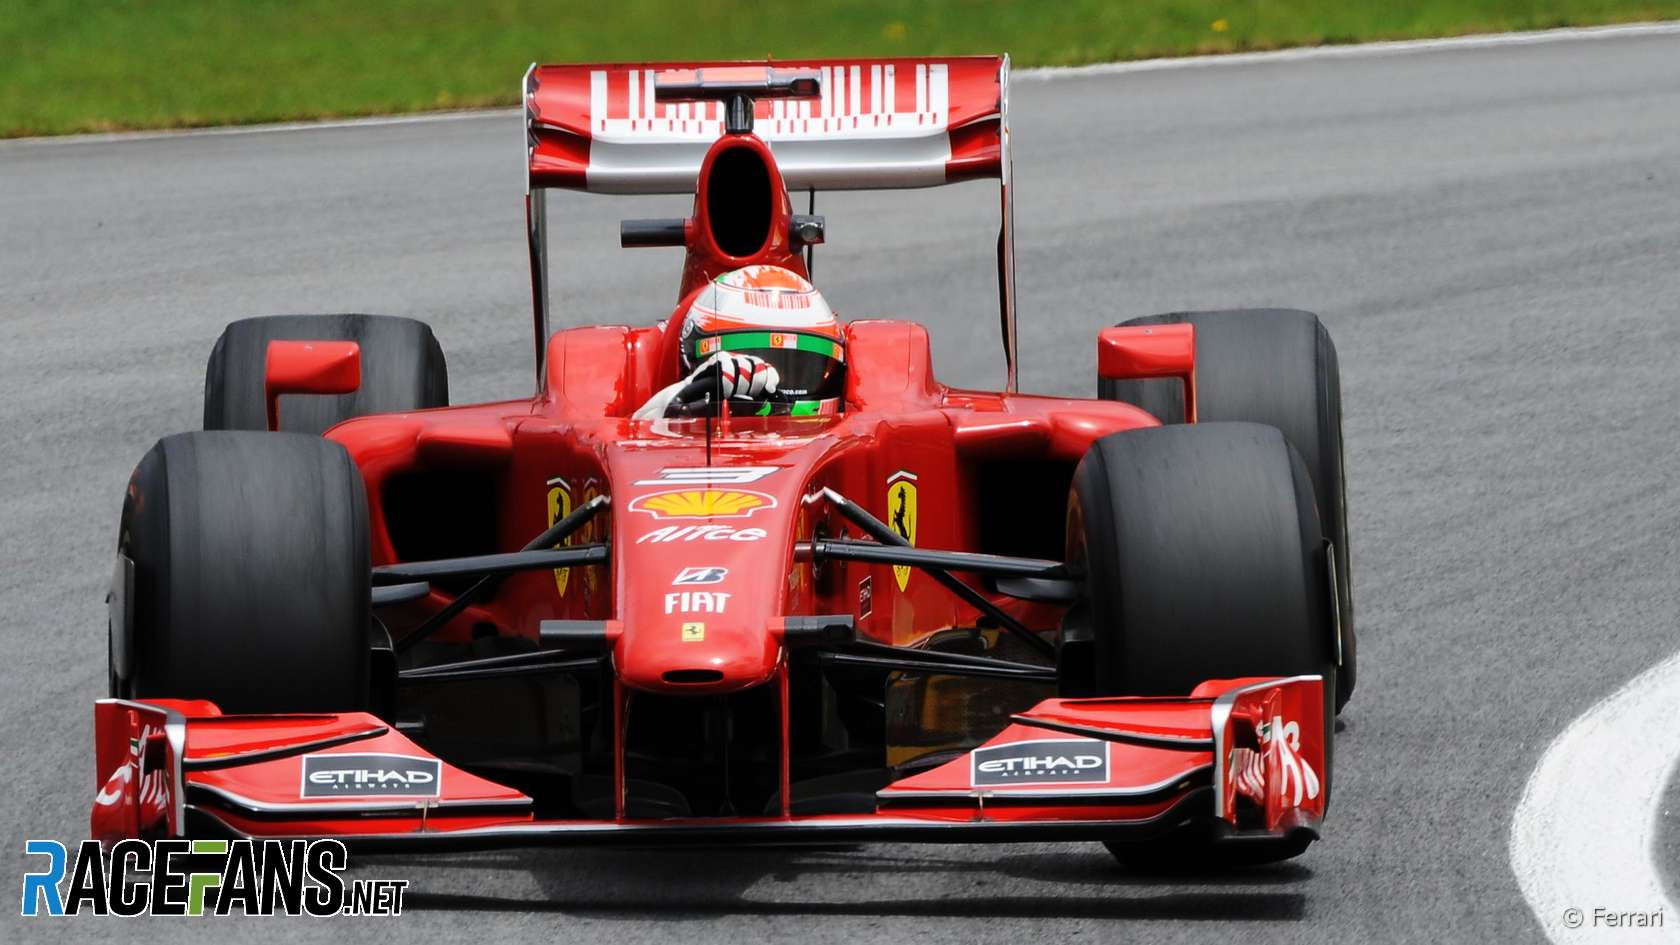 Giancarlo Fisichella Ferrari Interlagos 2009 & Ferrari tipped to return to an u0027all-redu0027 F1 livery · RaceFans